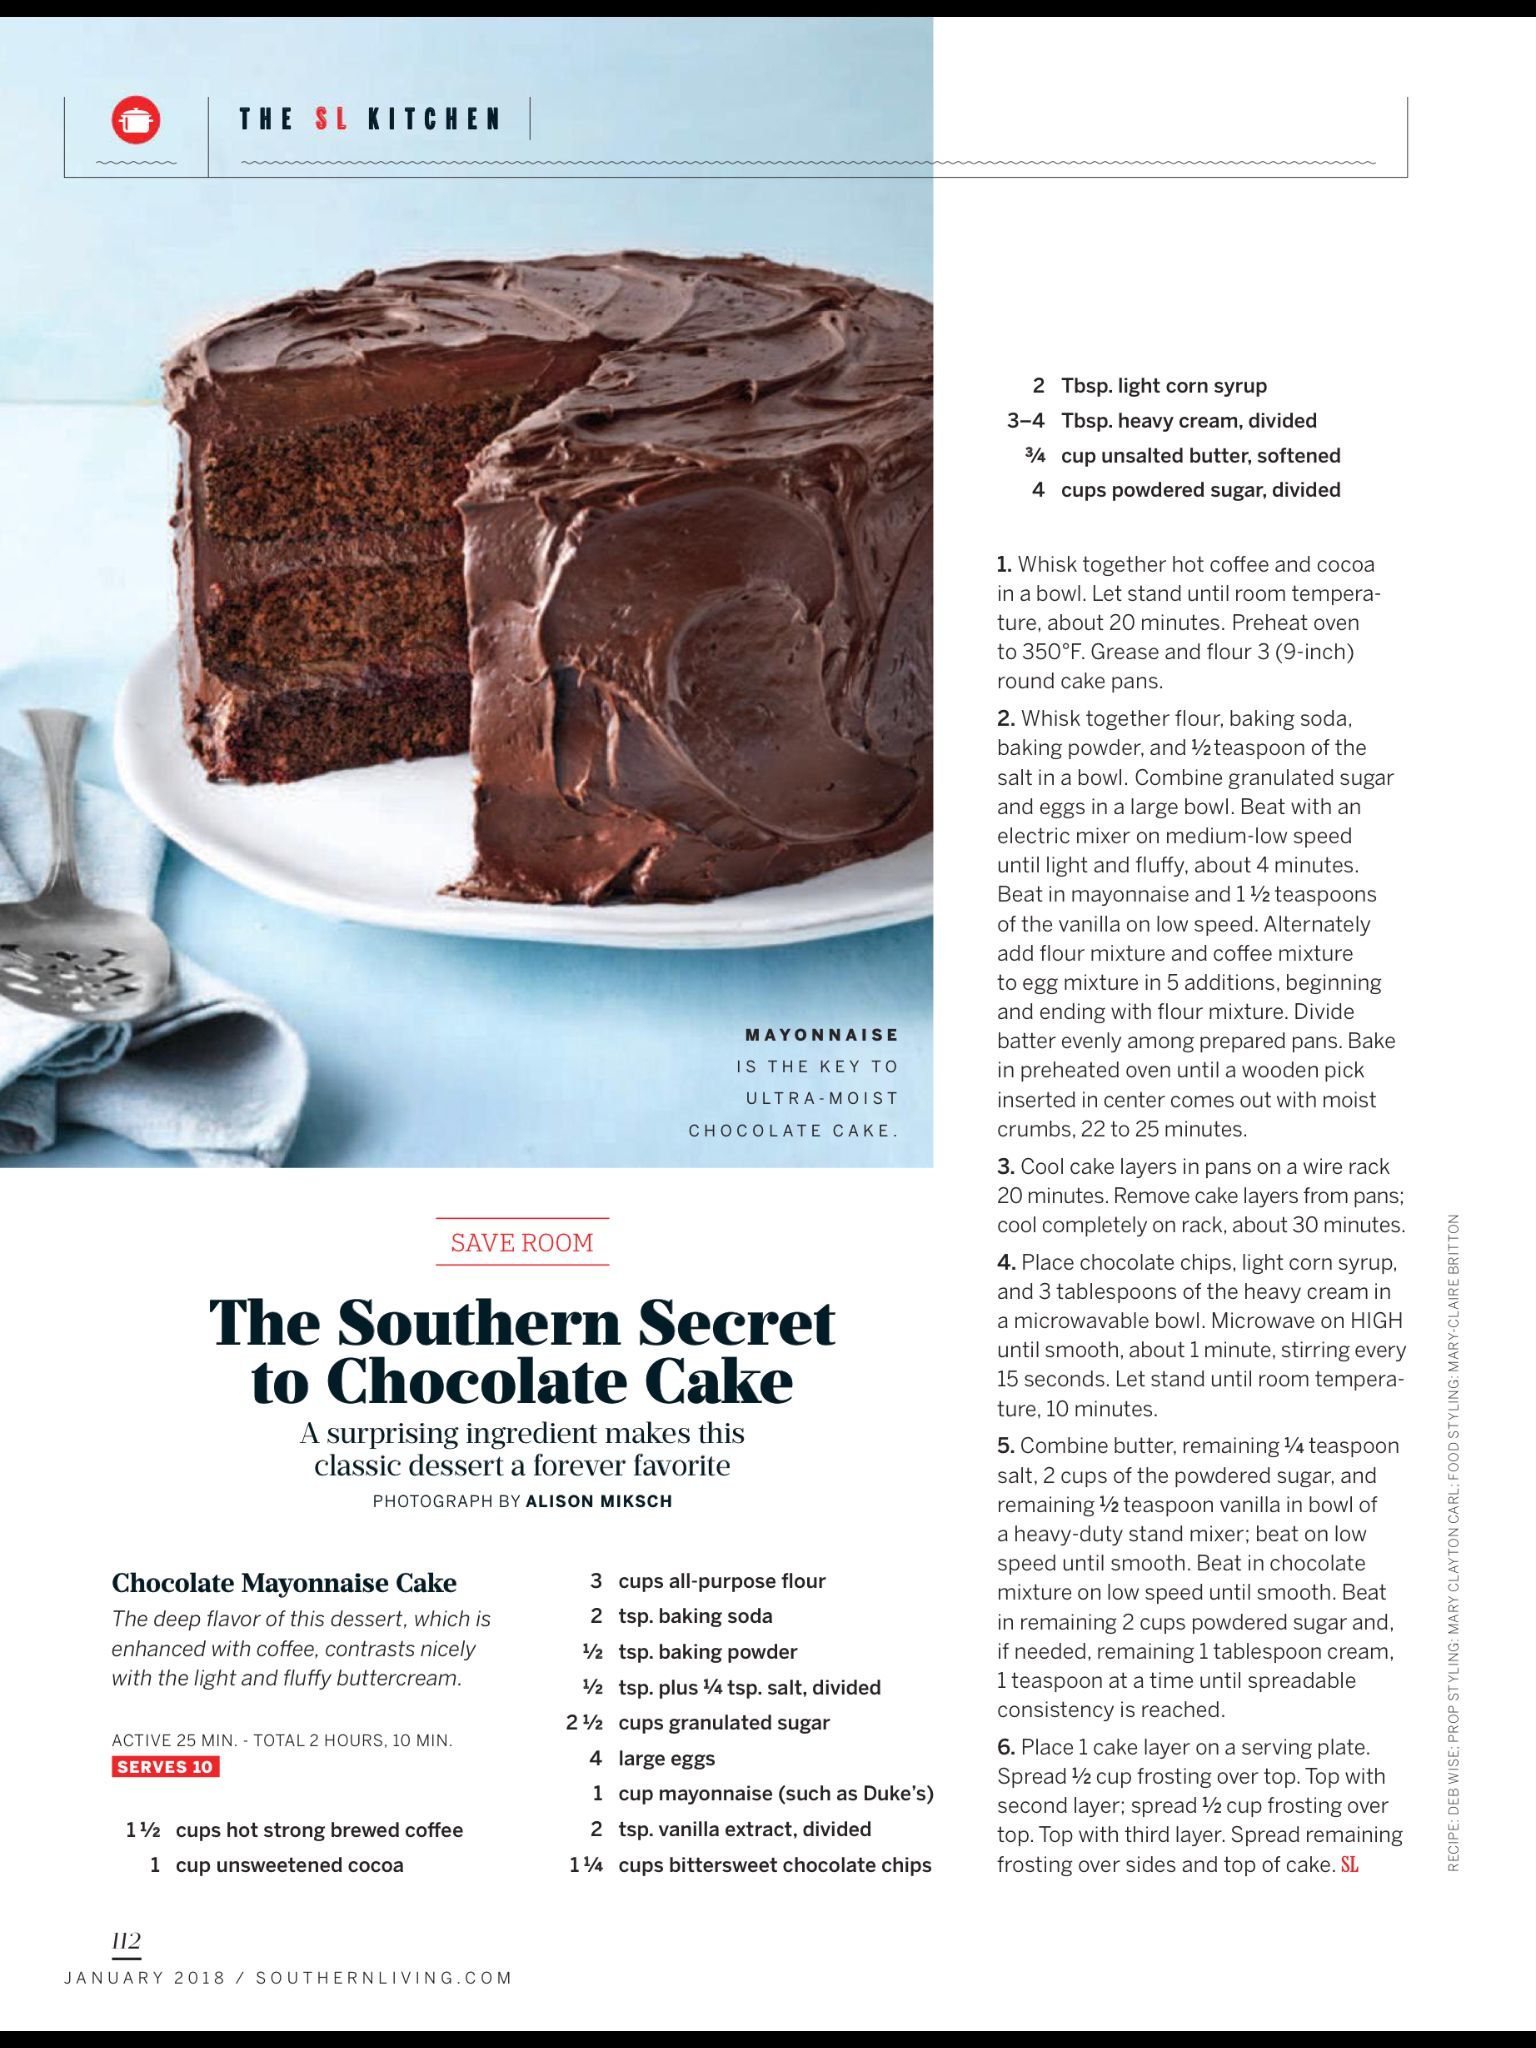 The Southern Secret To Chocolate Cake From Southern Living